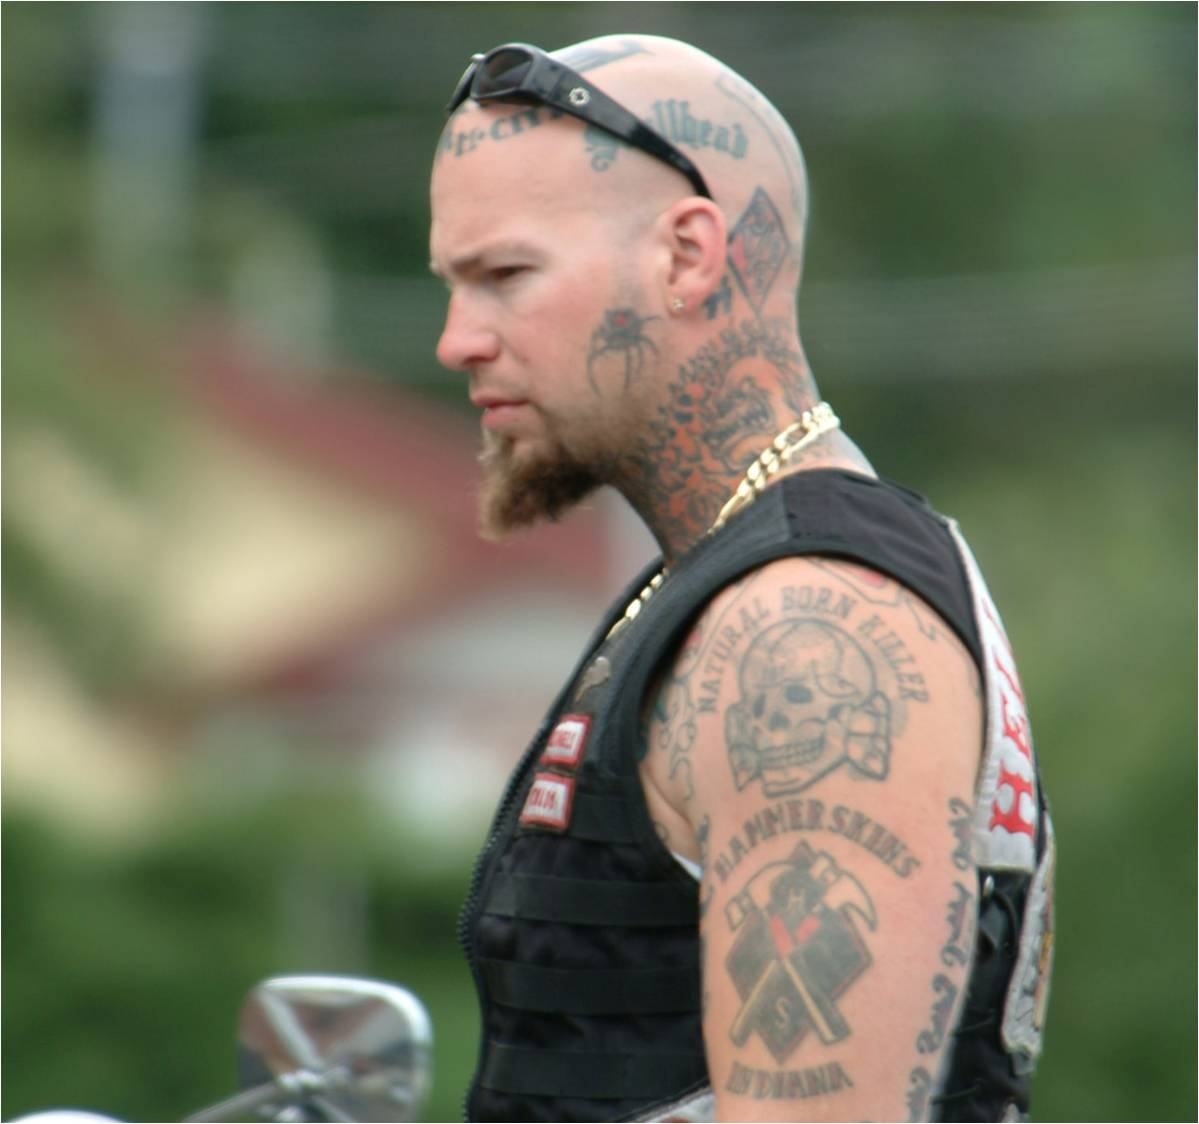 I am Writing a research paper on the hells angels. Does anyone know of good resources ?